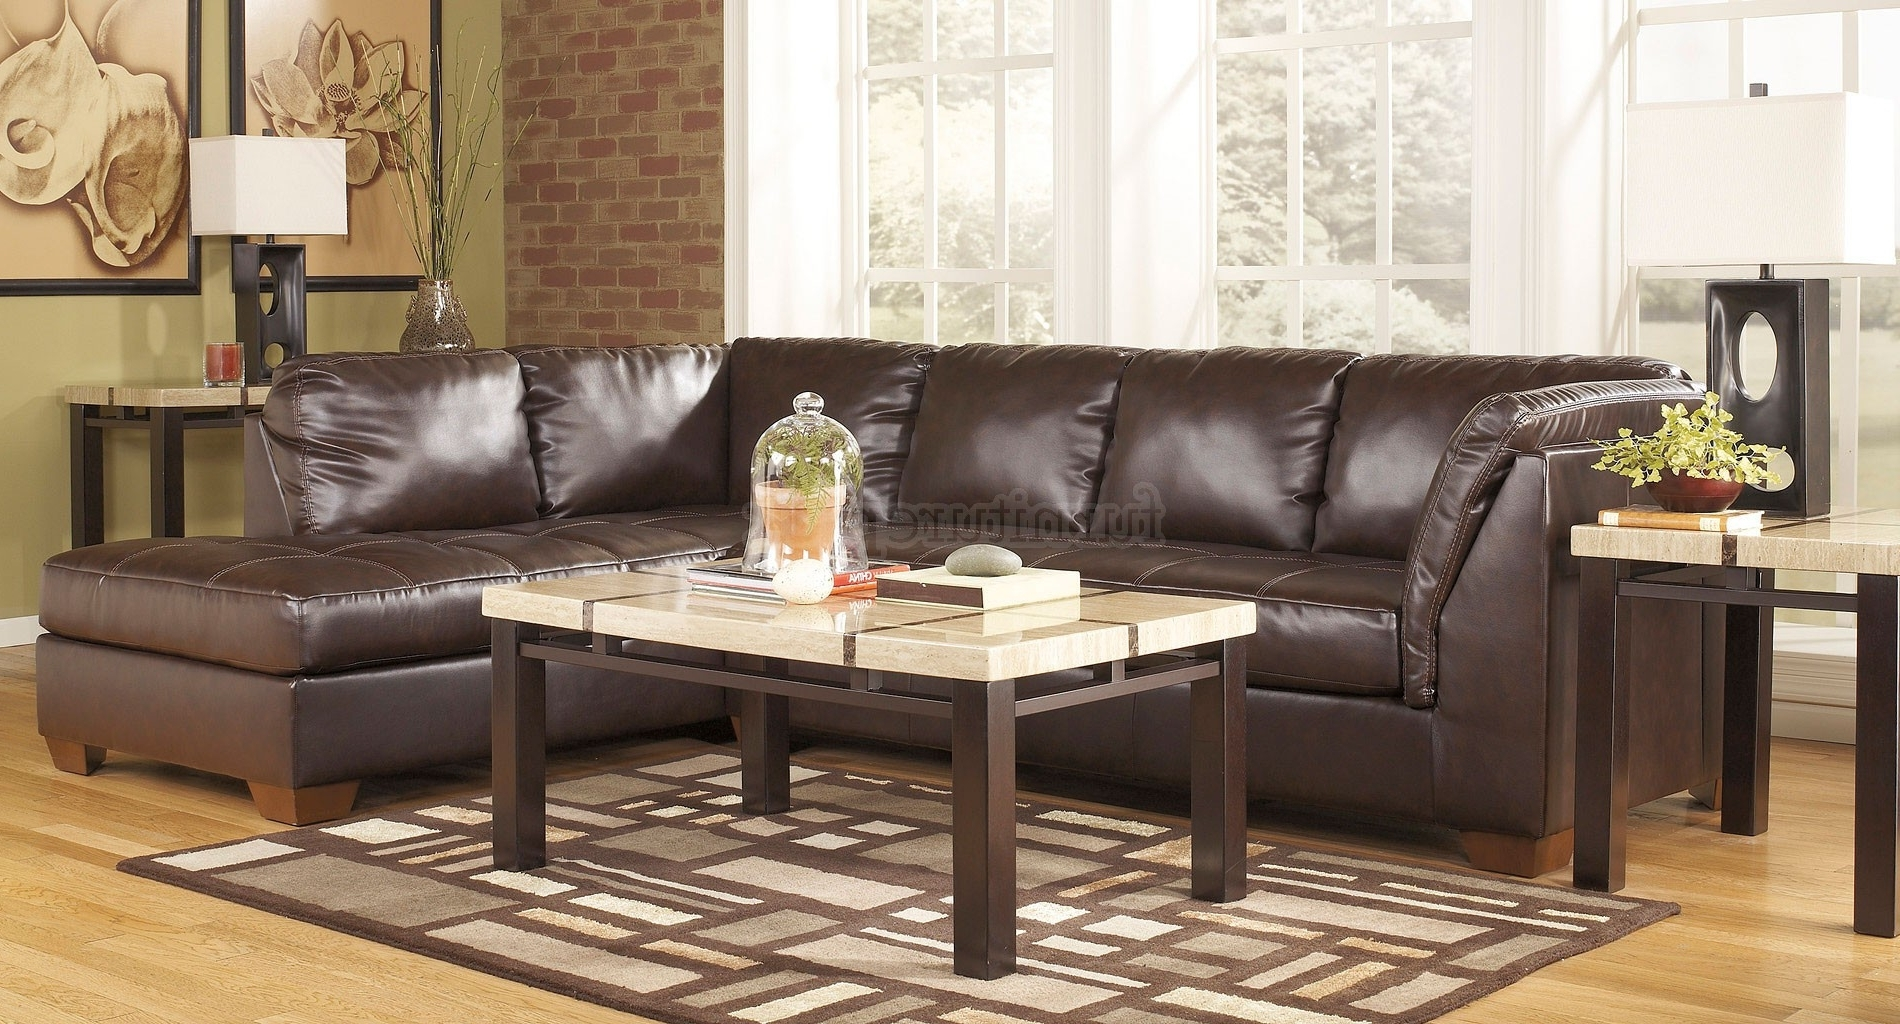 Sectional Sofas Under 300 With Regard To Latest Tallahassee Sectional Sofas (View 16 of 20)